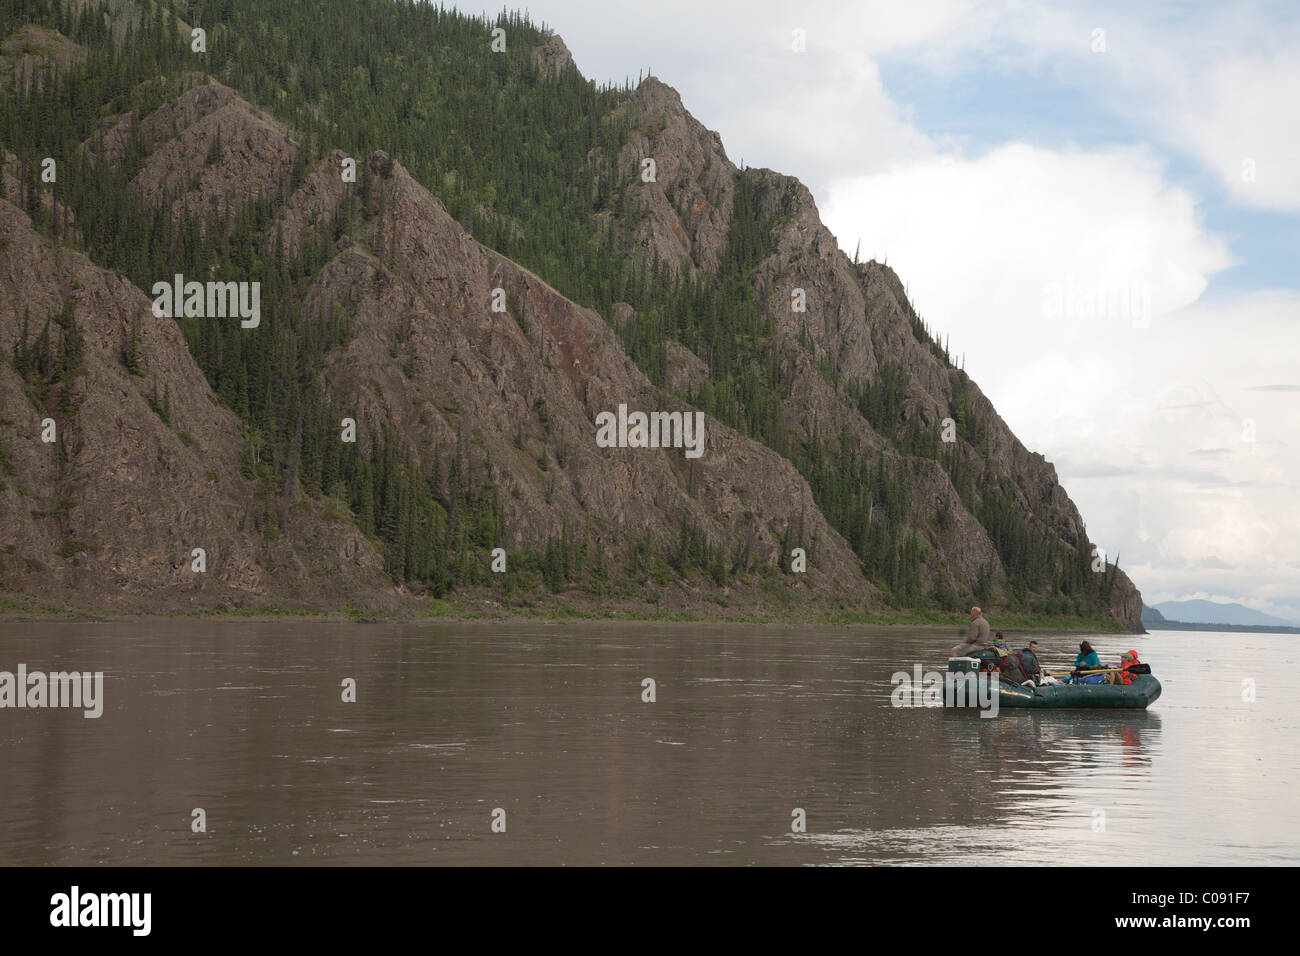 Family floats by a large rock formation along the Yukon River, Yukon-Charley Rivers National Preserve, Interior - Stock Image